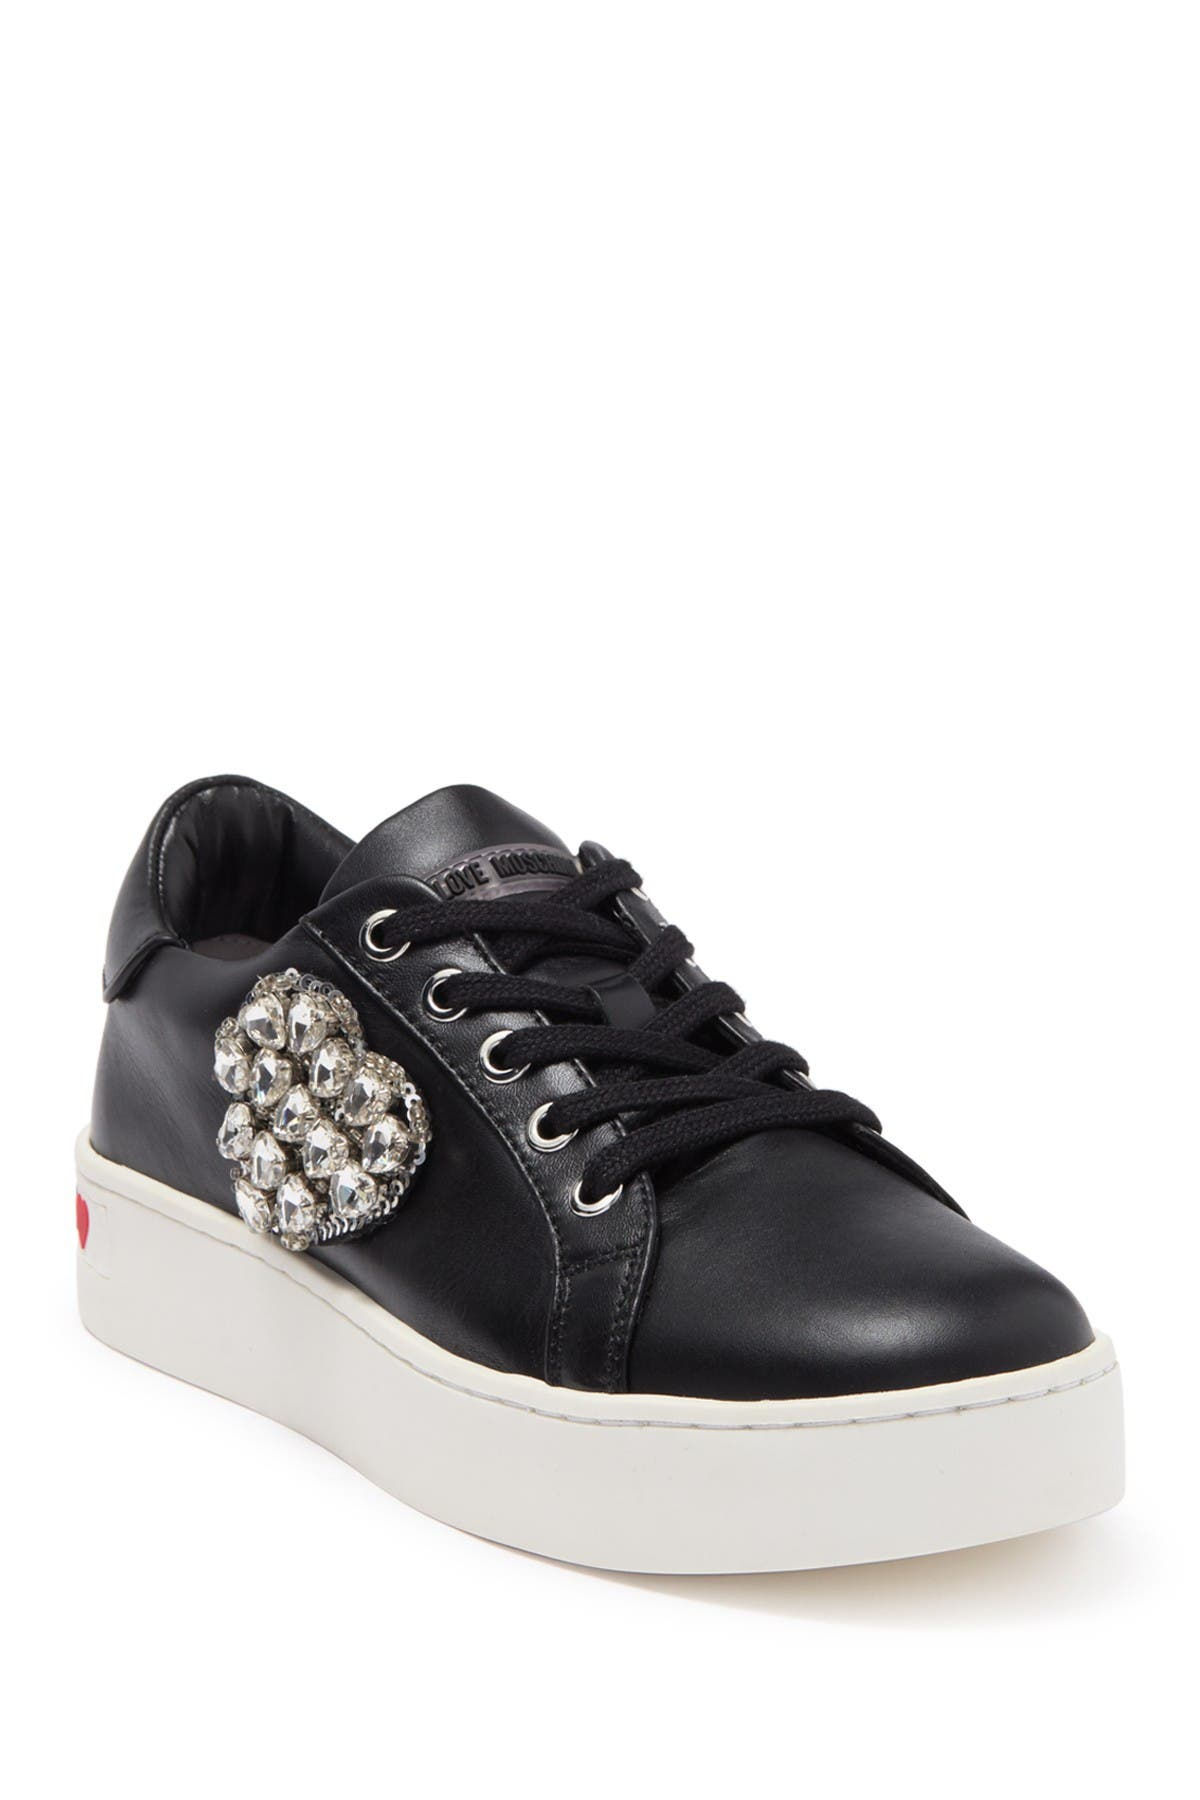 Image of LOVE Moschino Embellished Leather Sneaker